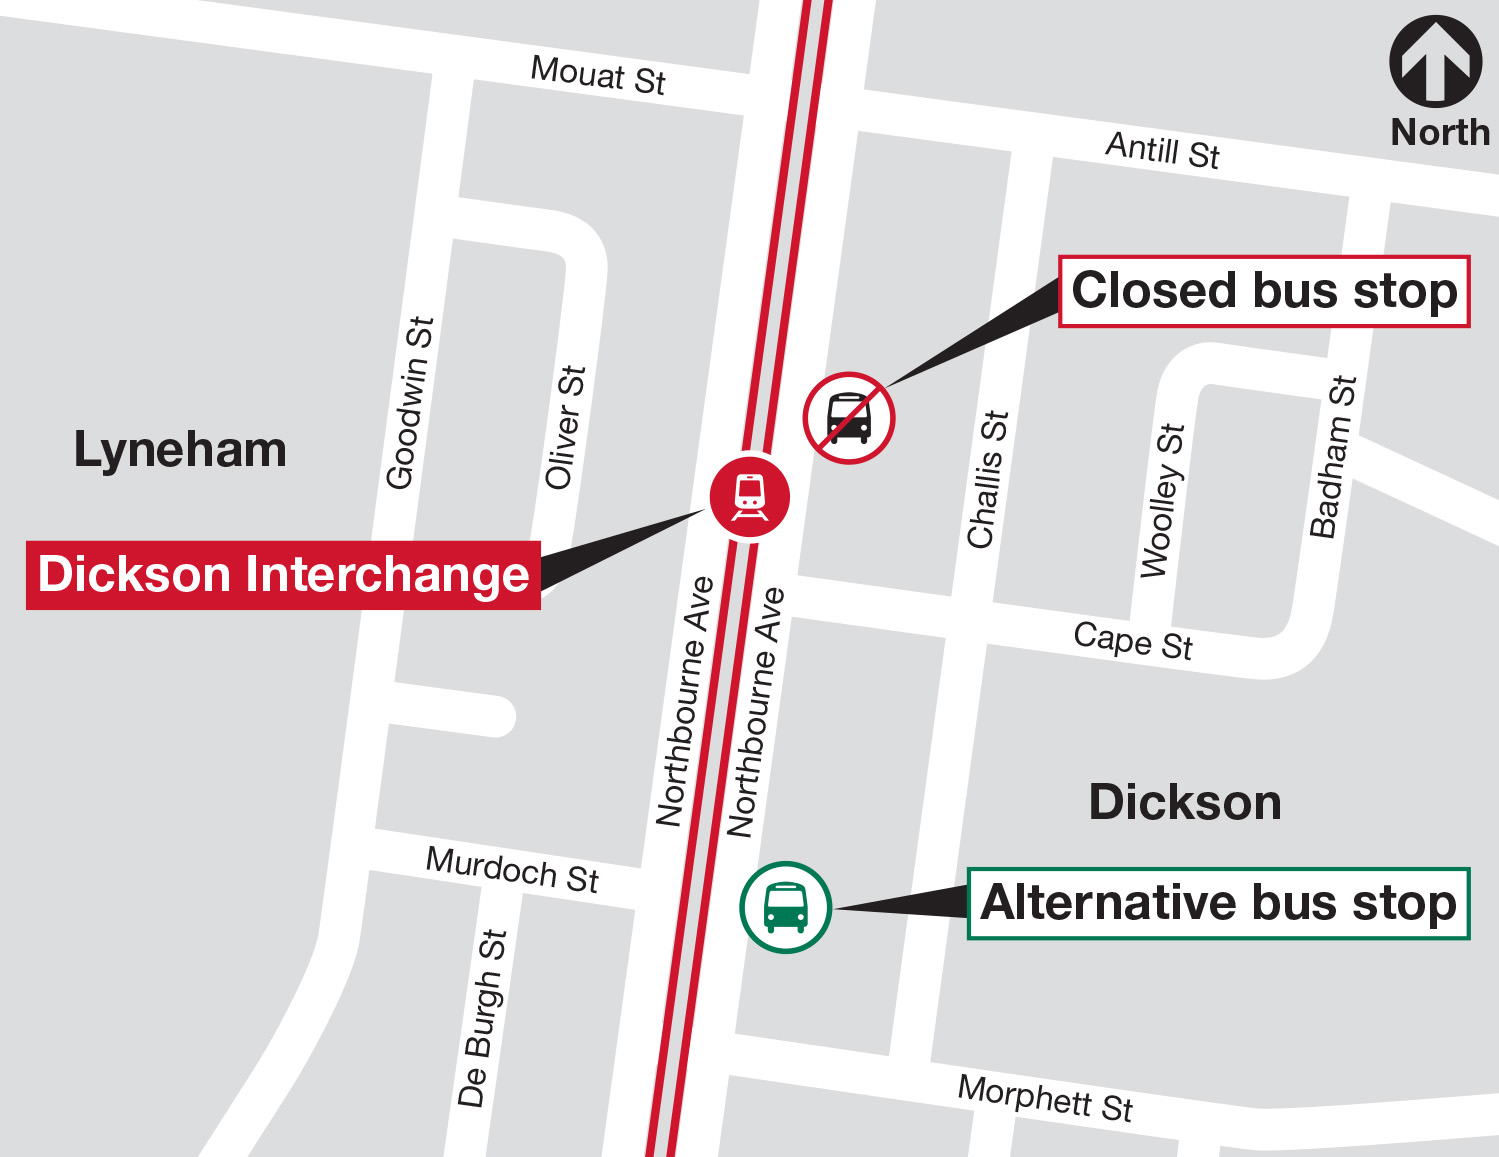 Northbourne Avenue bus stop closure and alternative